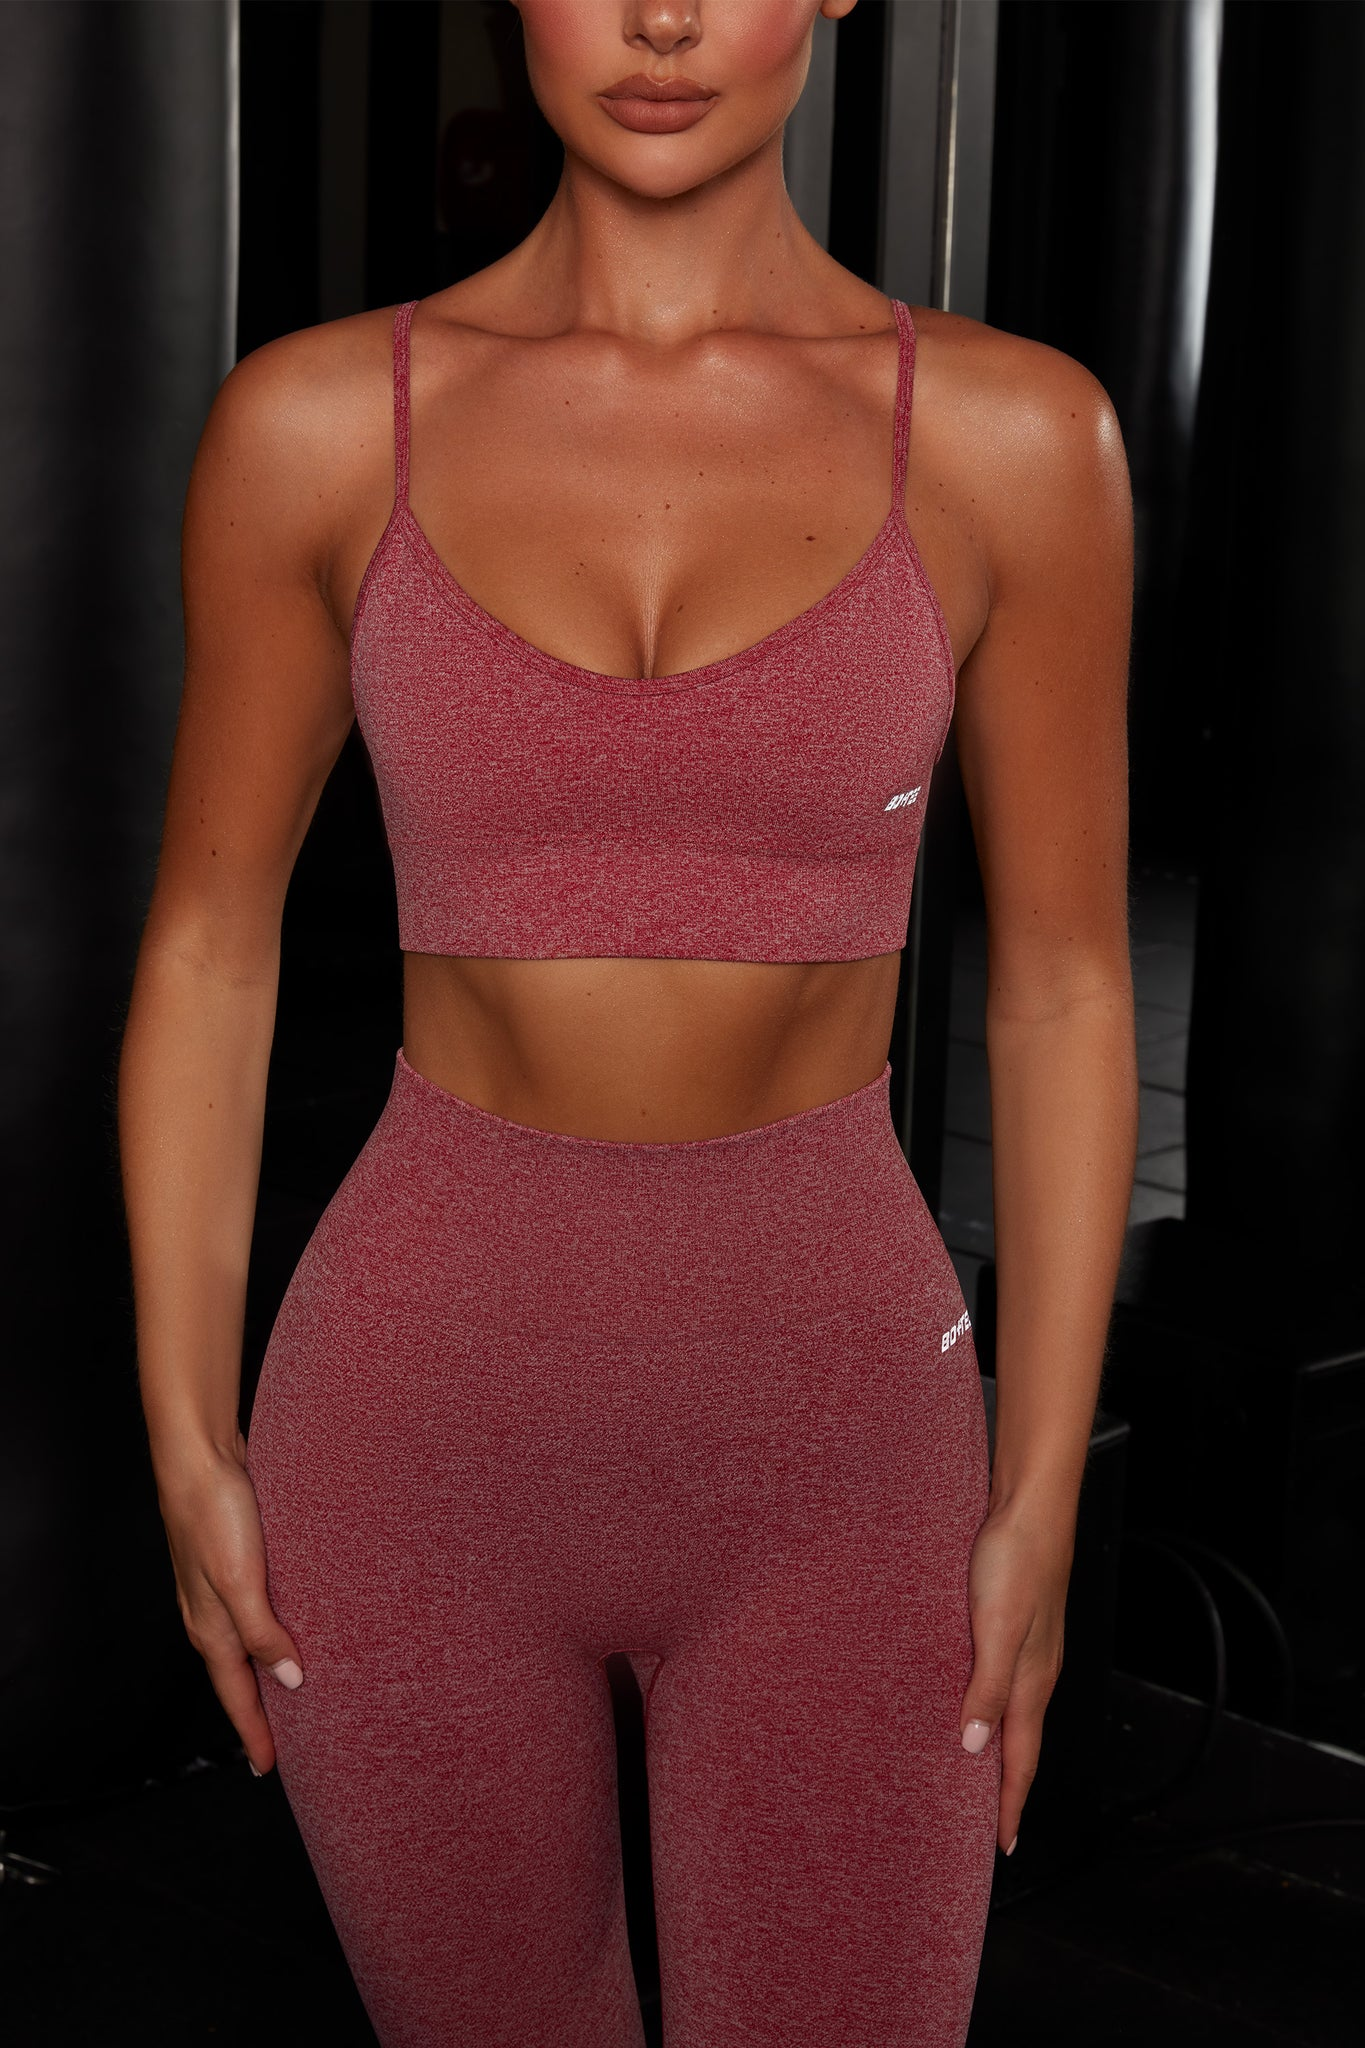 Plain red melange V neck sports bra with ribbed underband, reflective branding and thin adjustable straps. Image 4 of 6.